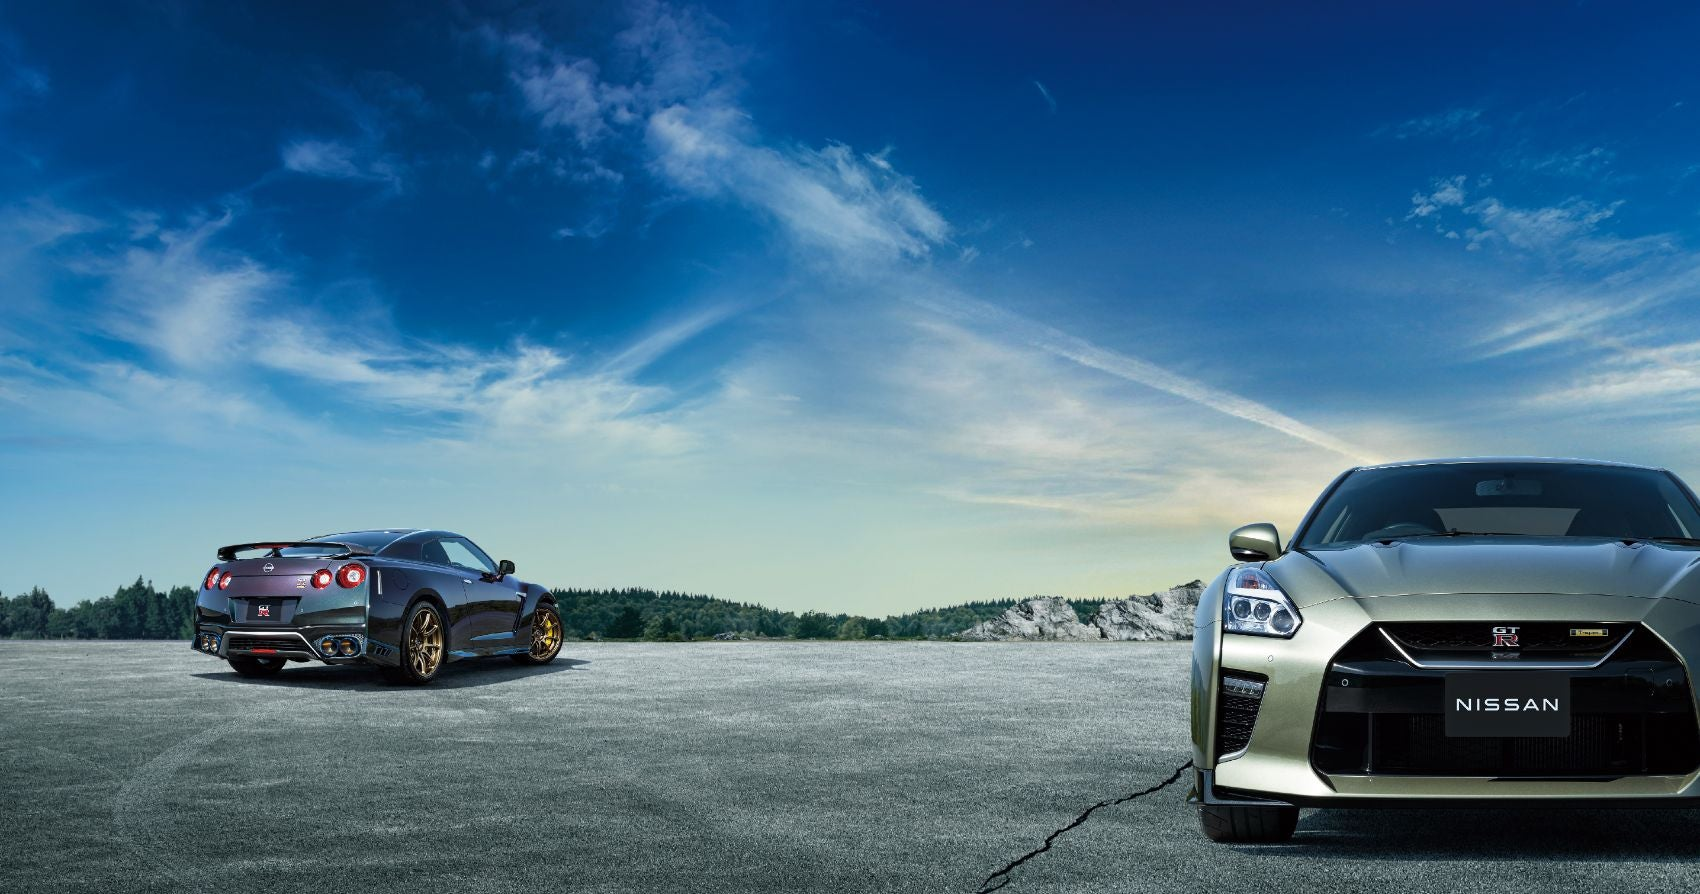 Enjoy This Awesome Photo Gallery of The 2021 Nissan GT-R T-spec